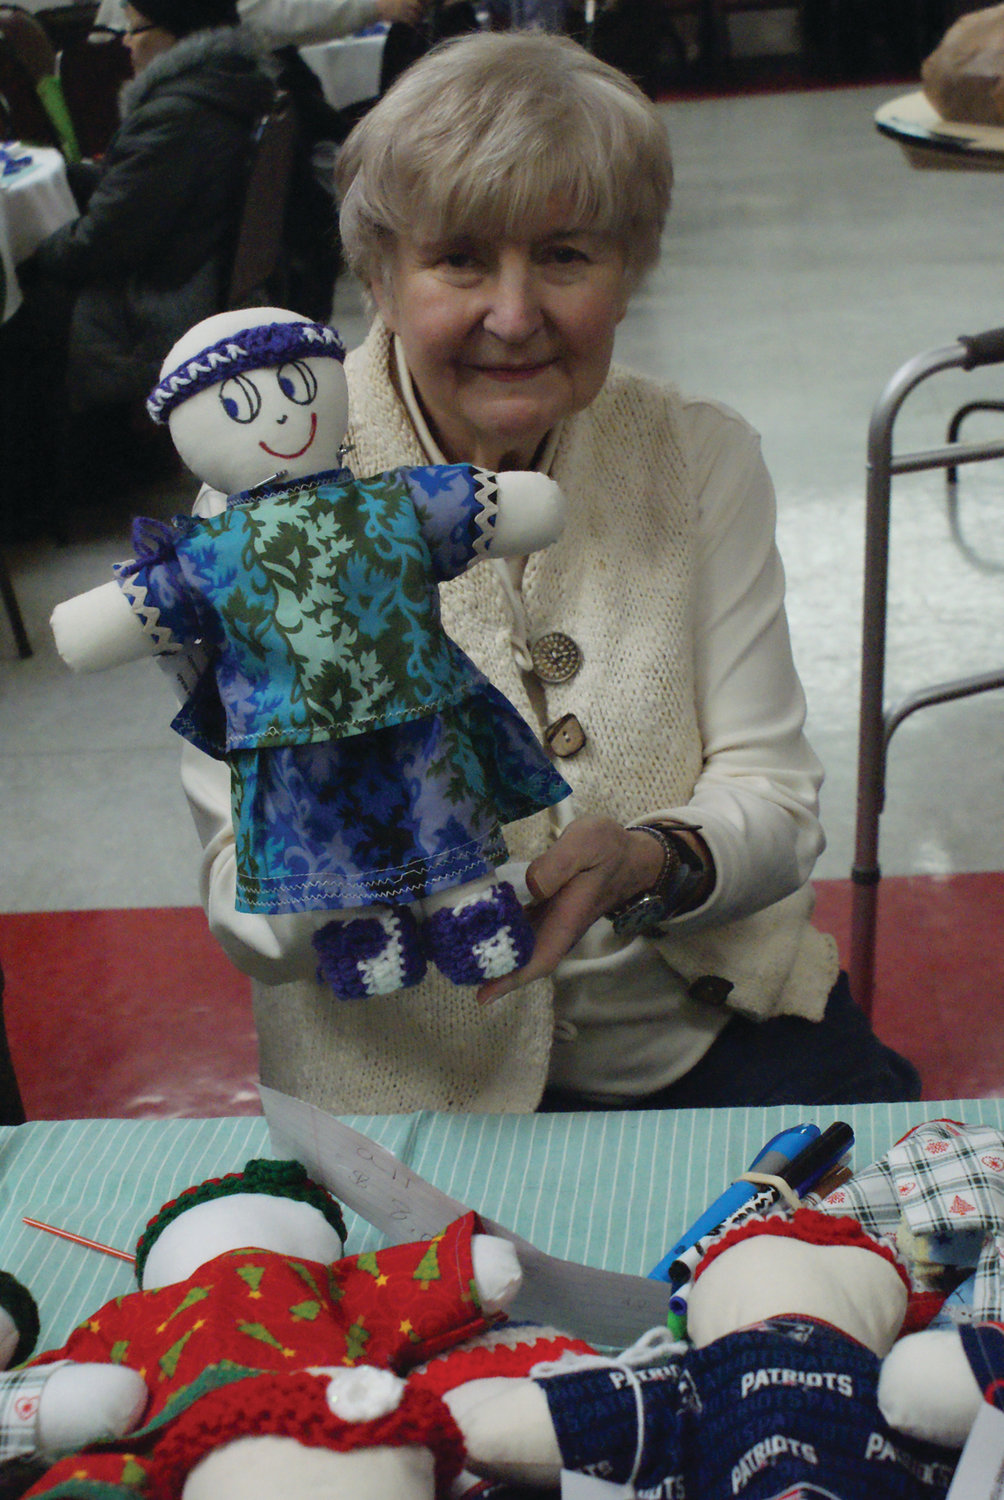 FINDING A SMILE: The Smile Dolls generally come with no faces so that children can draw their own, although a smile can be requested. Pictured is Peggy Gale, 84, a former art teacher and volunteer for the Smile Dolls Program.